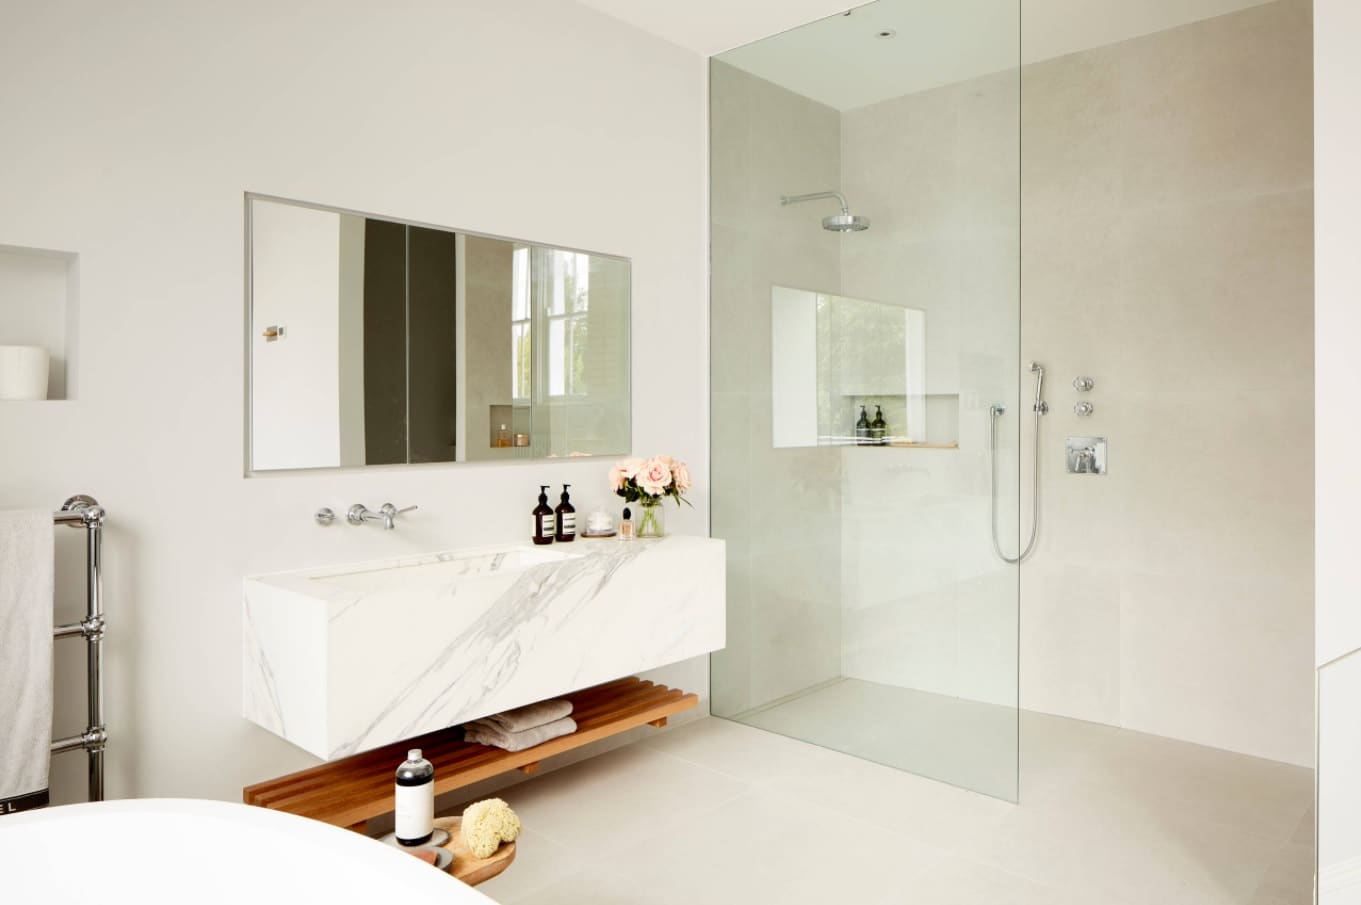 Bathroom Necessities_ 9 Things You Need to Have in Your Bathroom. Stylish contemporary bathroom in pastel creamy tones with hovering vanity and glass shower screen